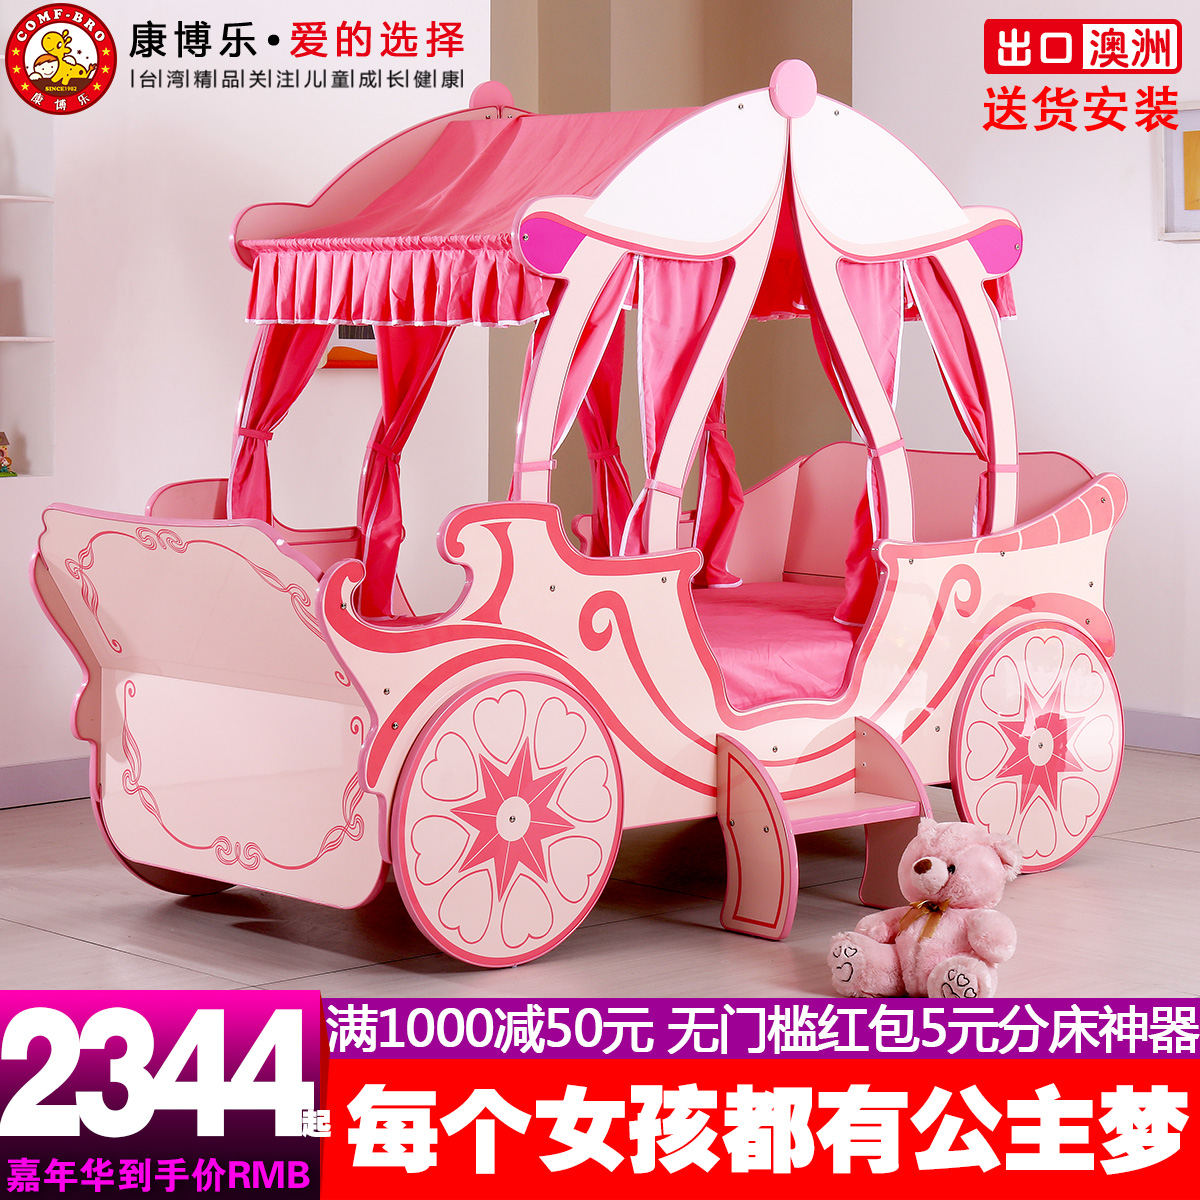 Pumpkin bed, princess bed, bed for children, girl car bed, single bed, pink cartoon car, royal carriage bed, double bed